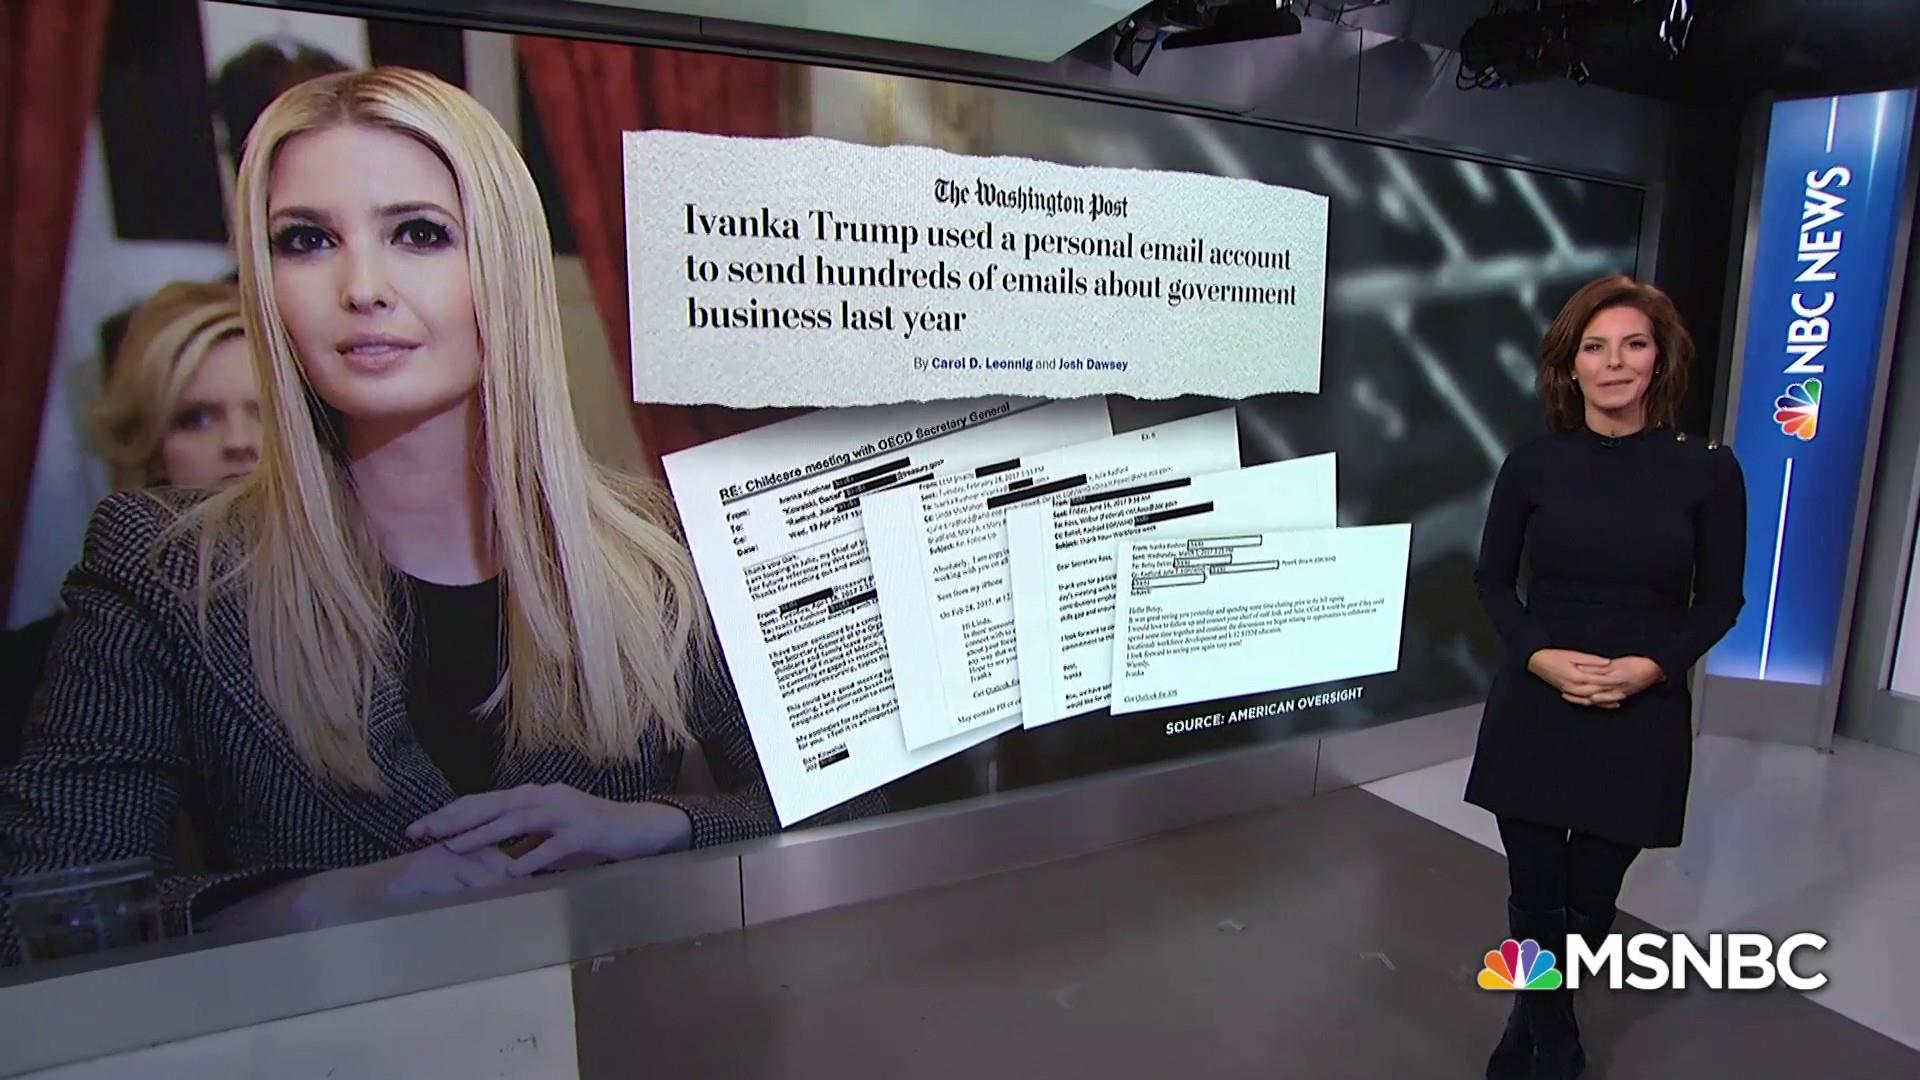 Does Ivanka Trump deserve same criticism as Clinton for emails?